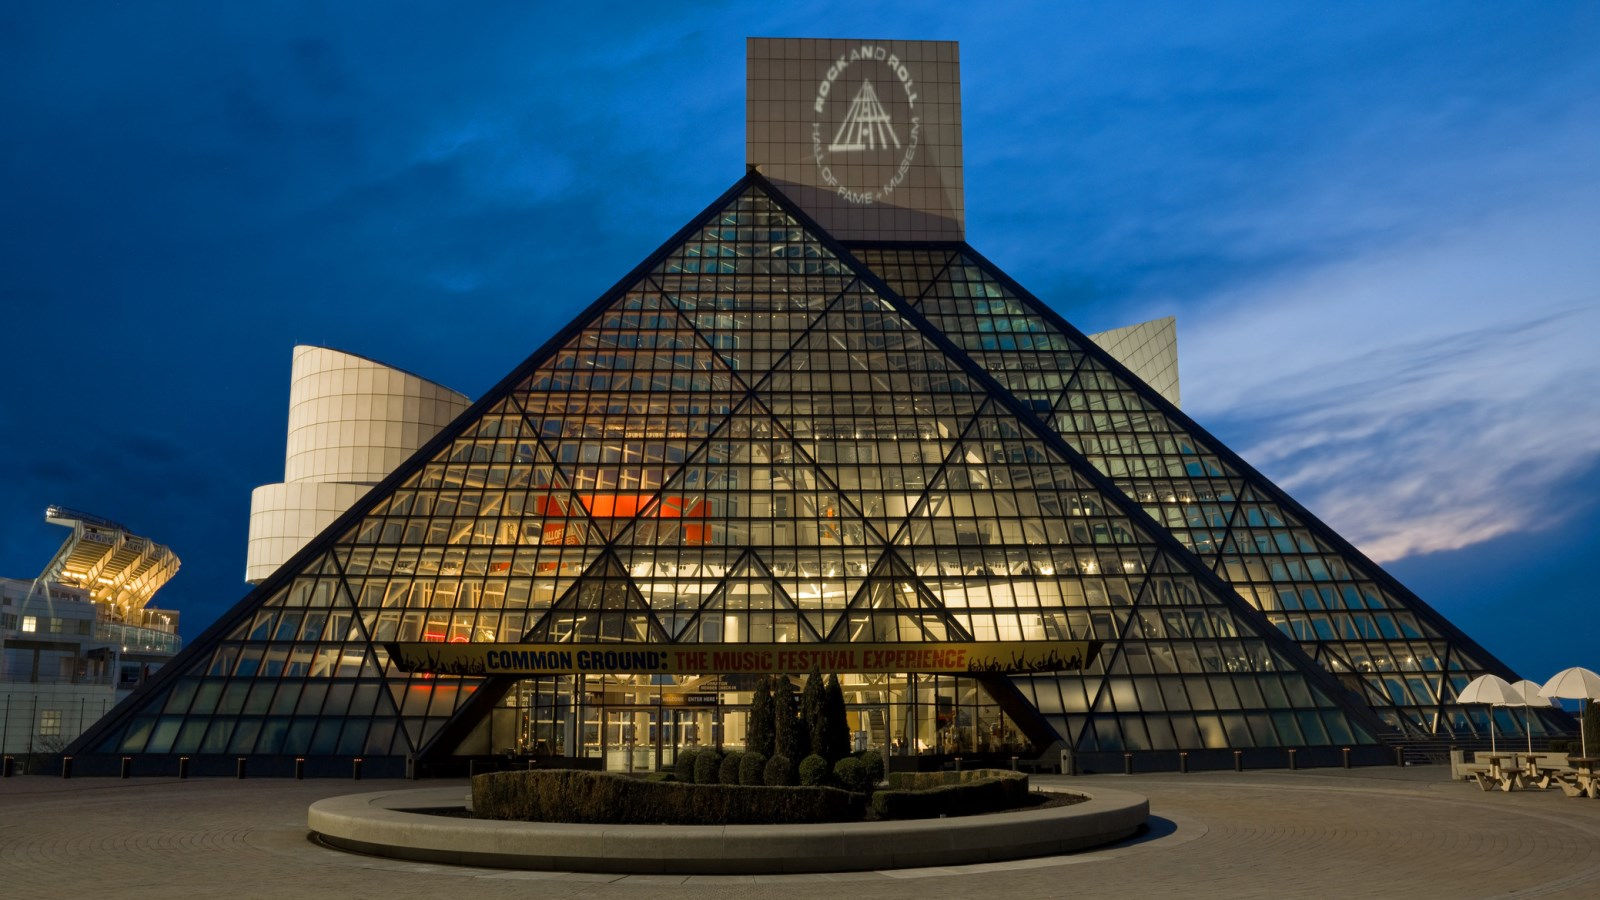 Things to do in Cleveland - Rock and Roll Hall of Fame